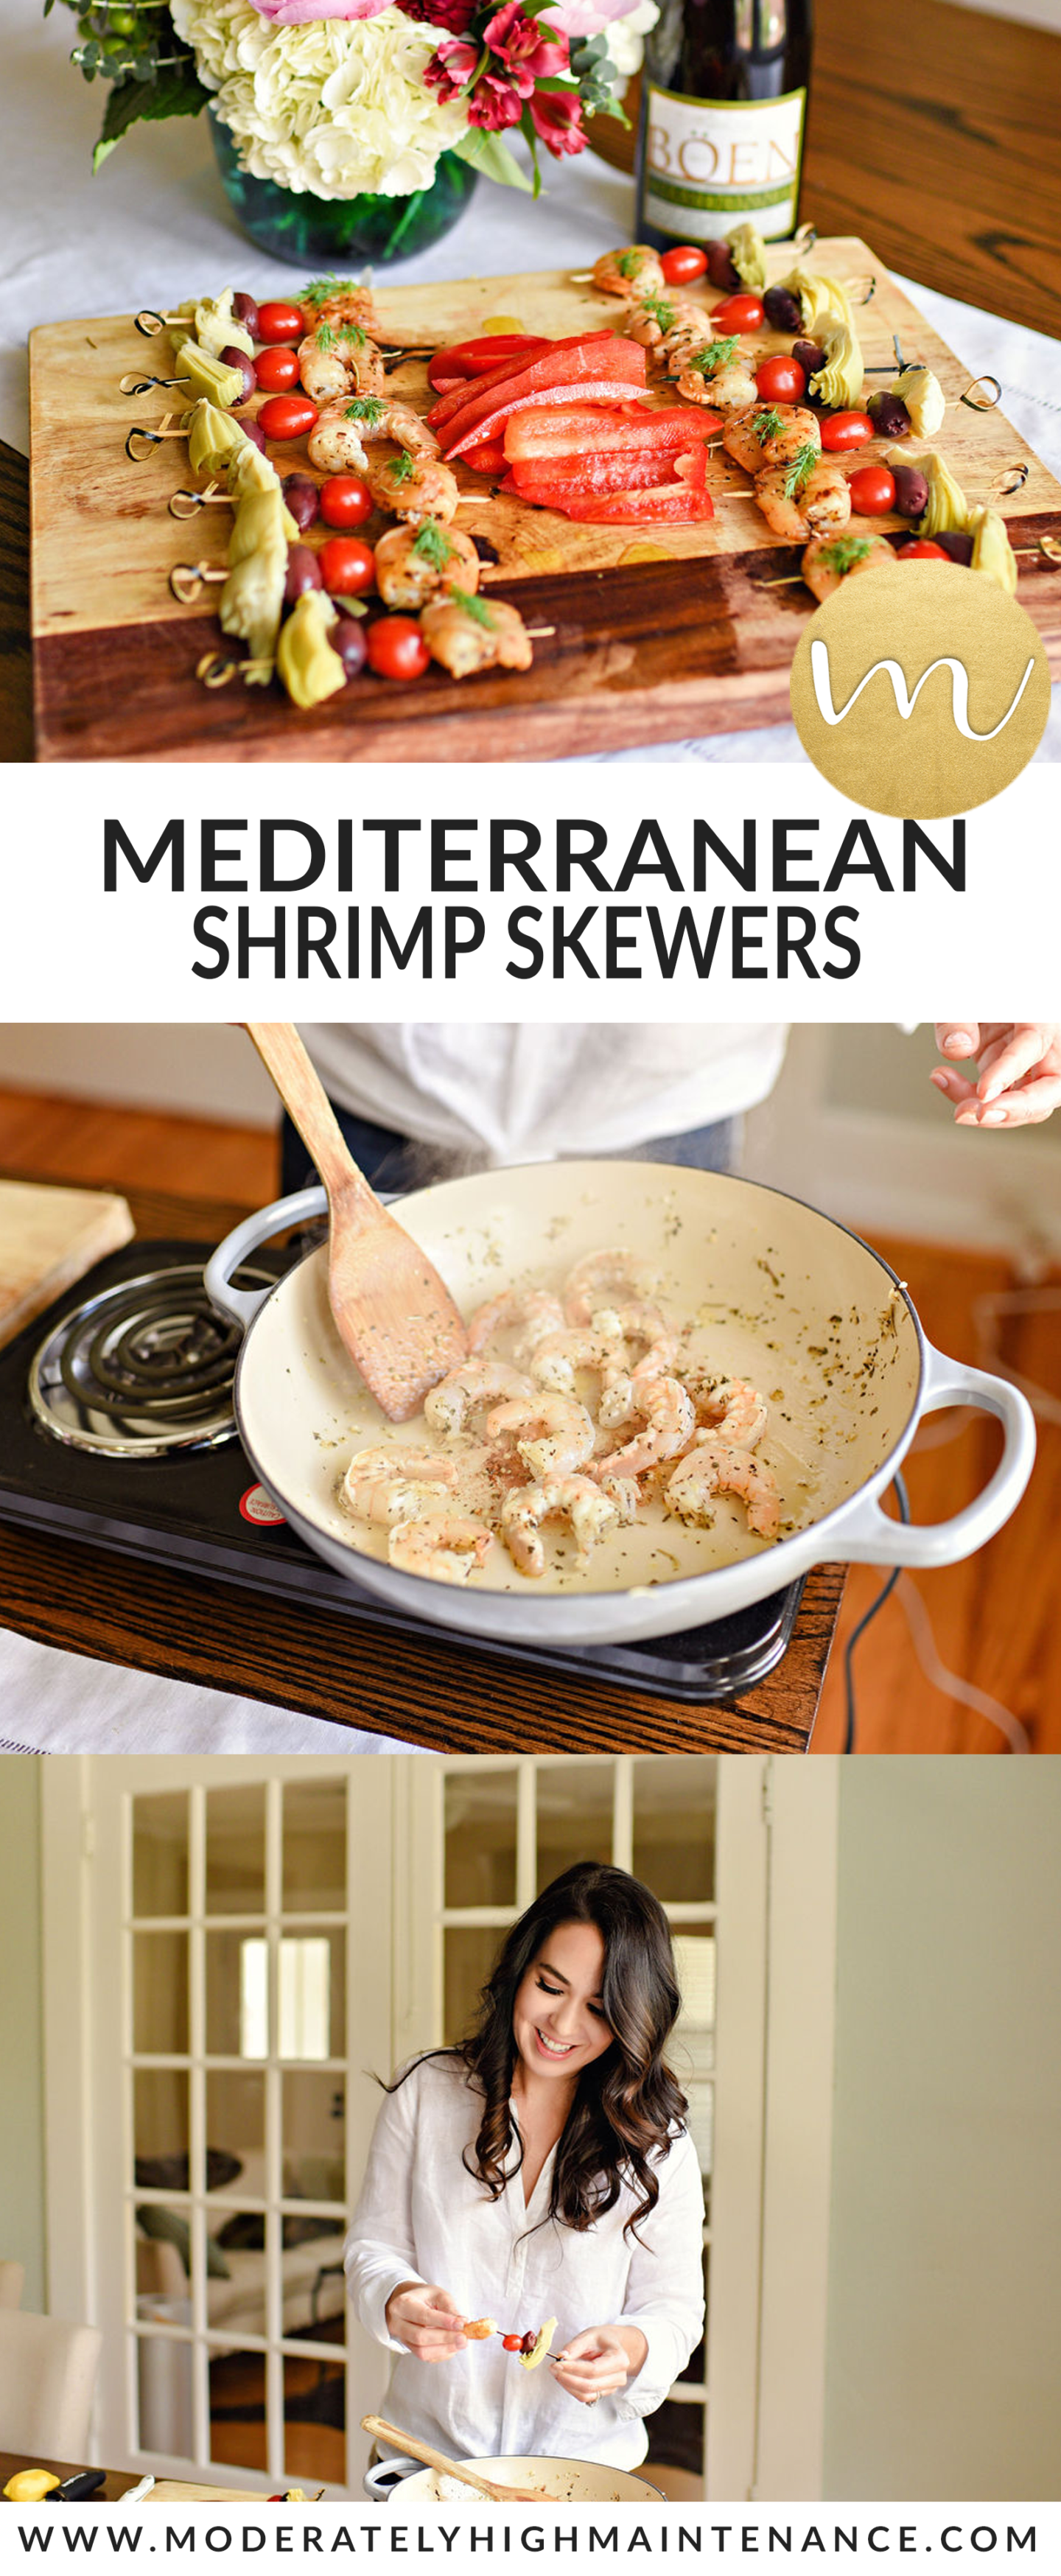 When I host a small gathering, I love making foods that are easy to pick up and enjoy. One of my favorite recipes is my Mediterranean Shrimp Skewers.